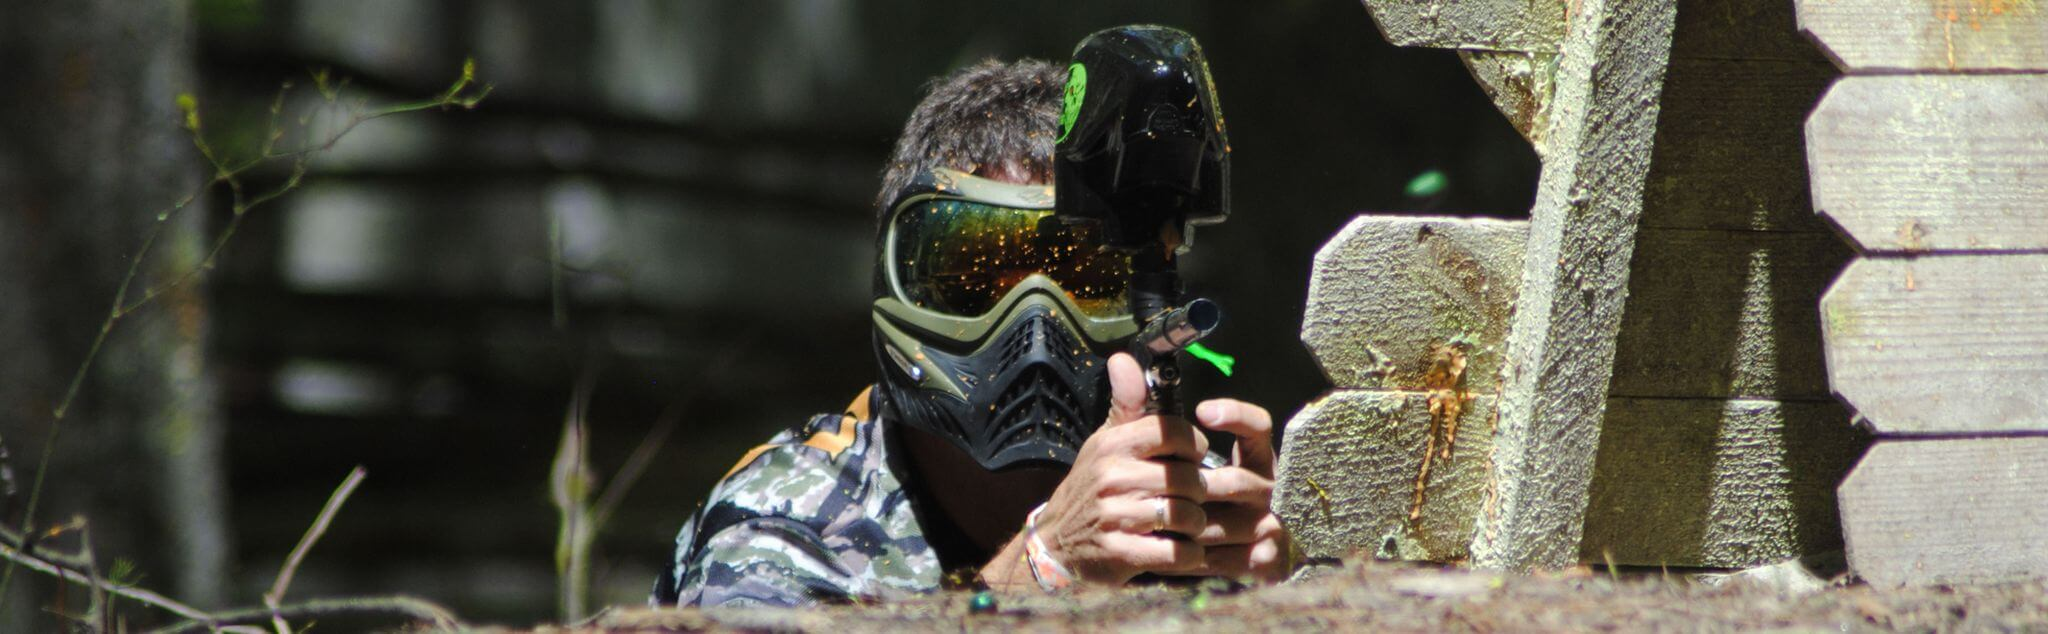 Paintball in Quintana Roo